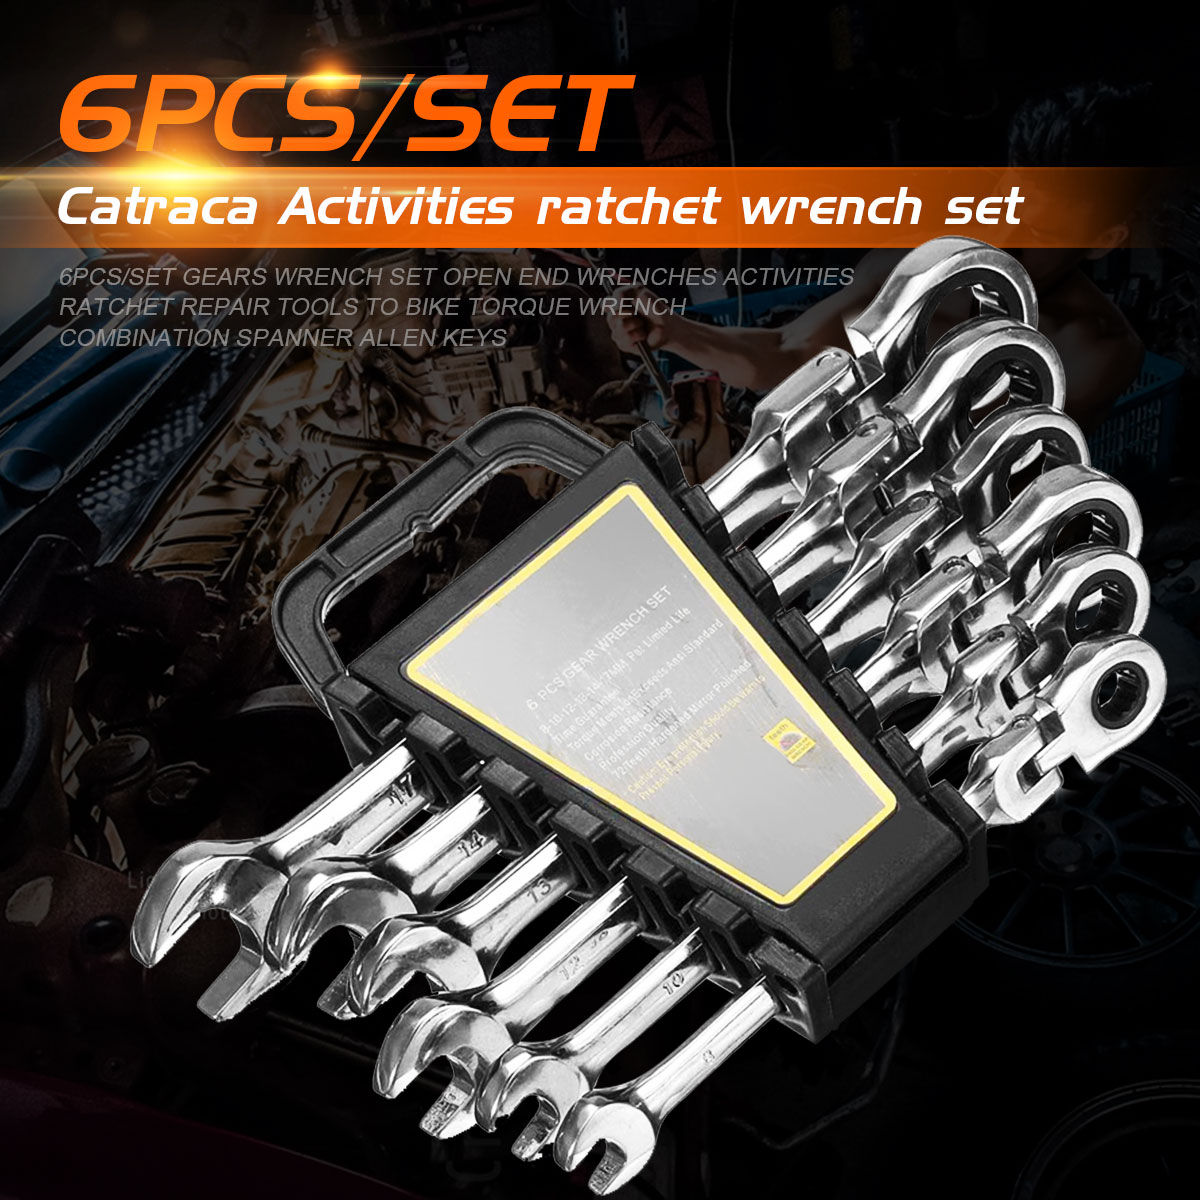 6pcs/set Gears Wrench Set Open End Wrenches Activities Ratchet Repair Tools To Bike Torque Wrench Combination Spanner Allen Keys